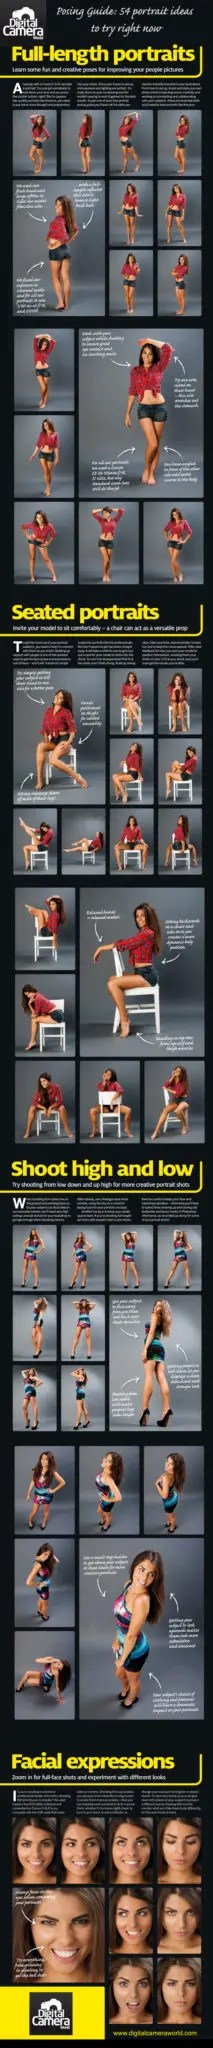 CAN52.pose_pullout.indd